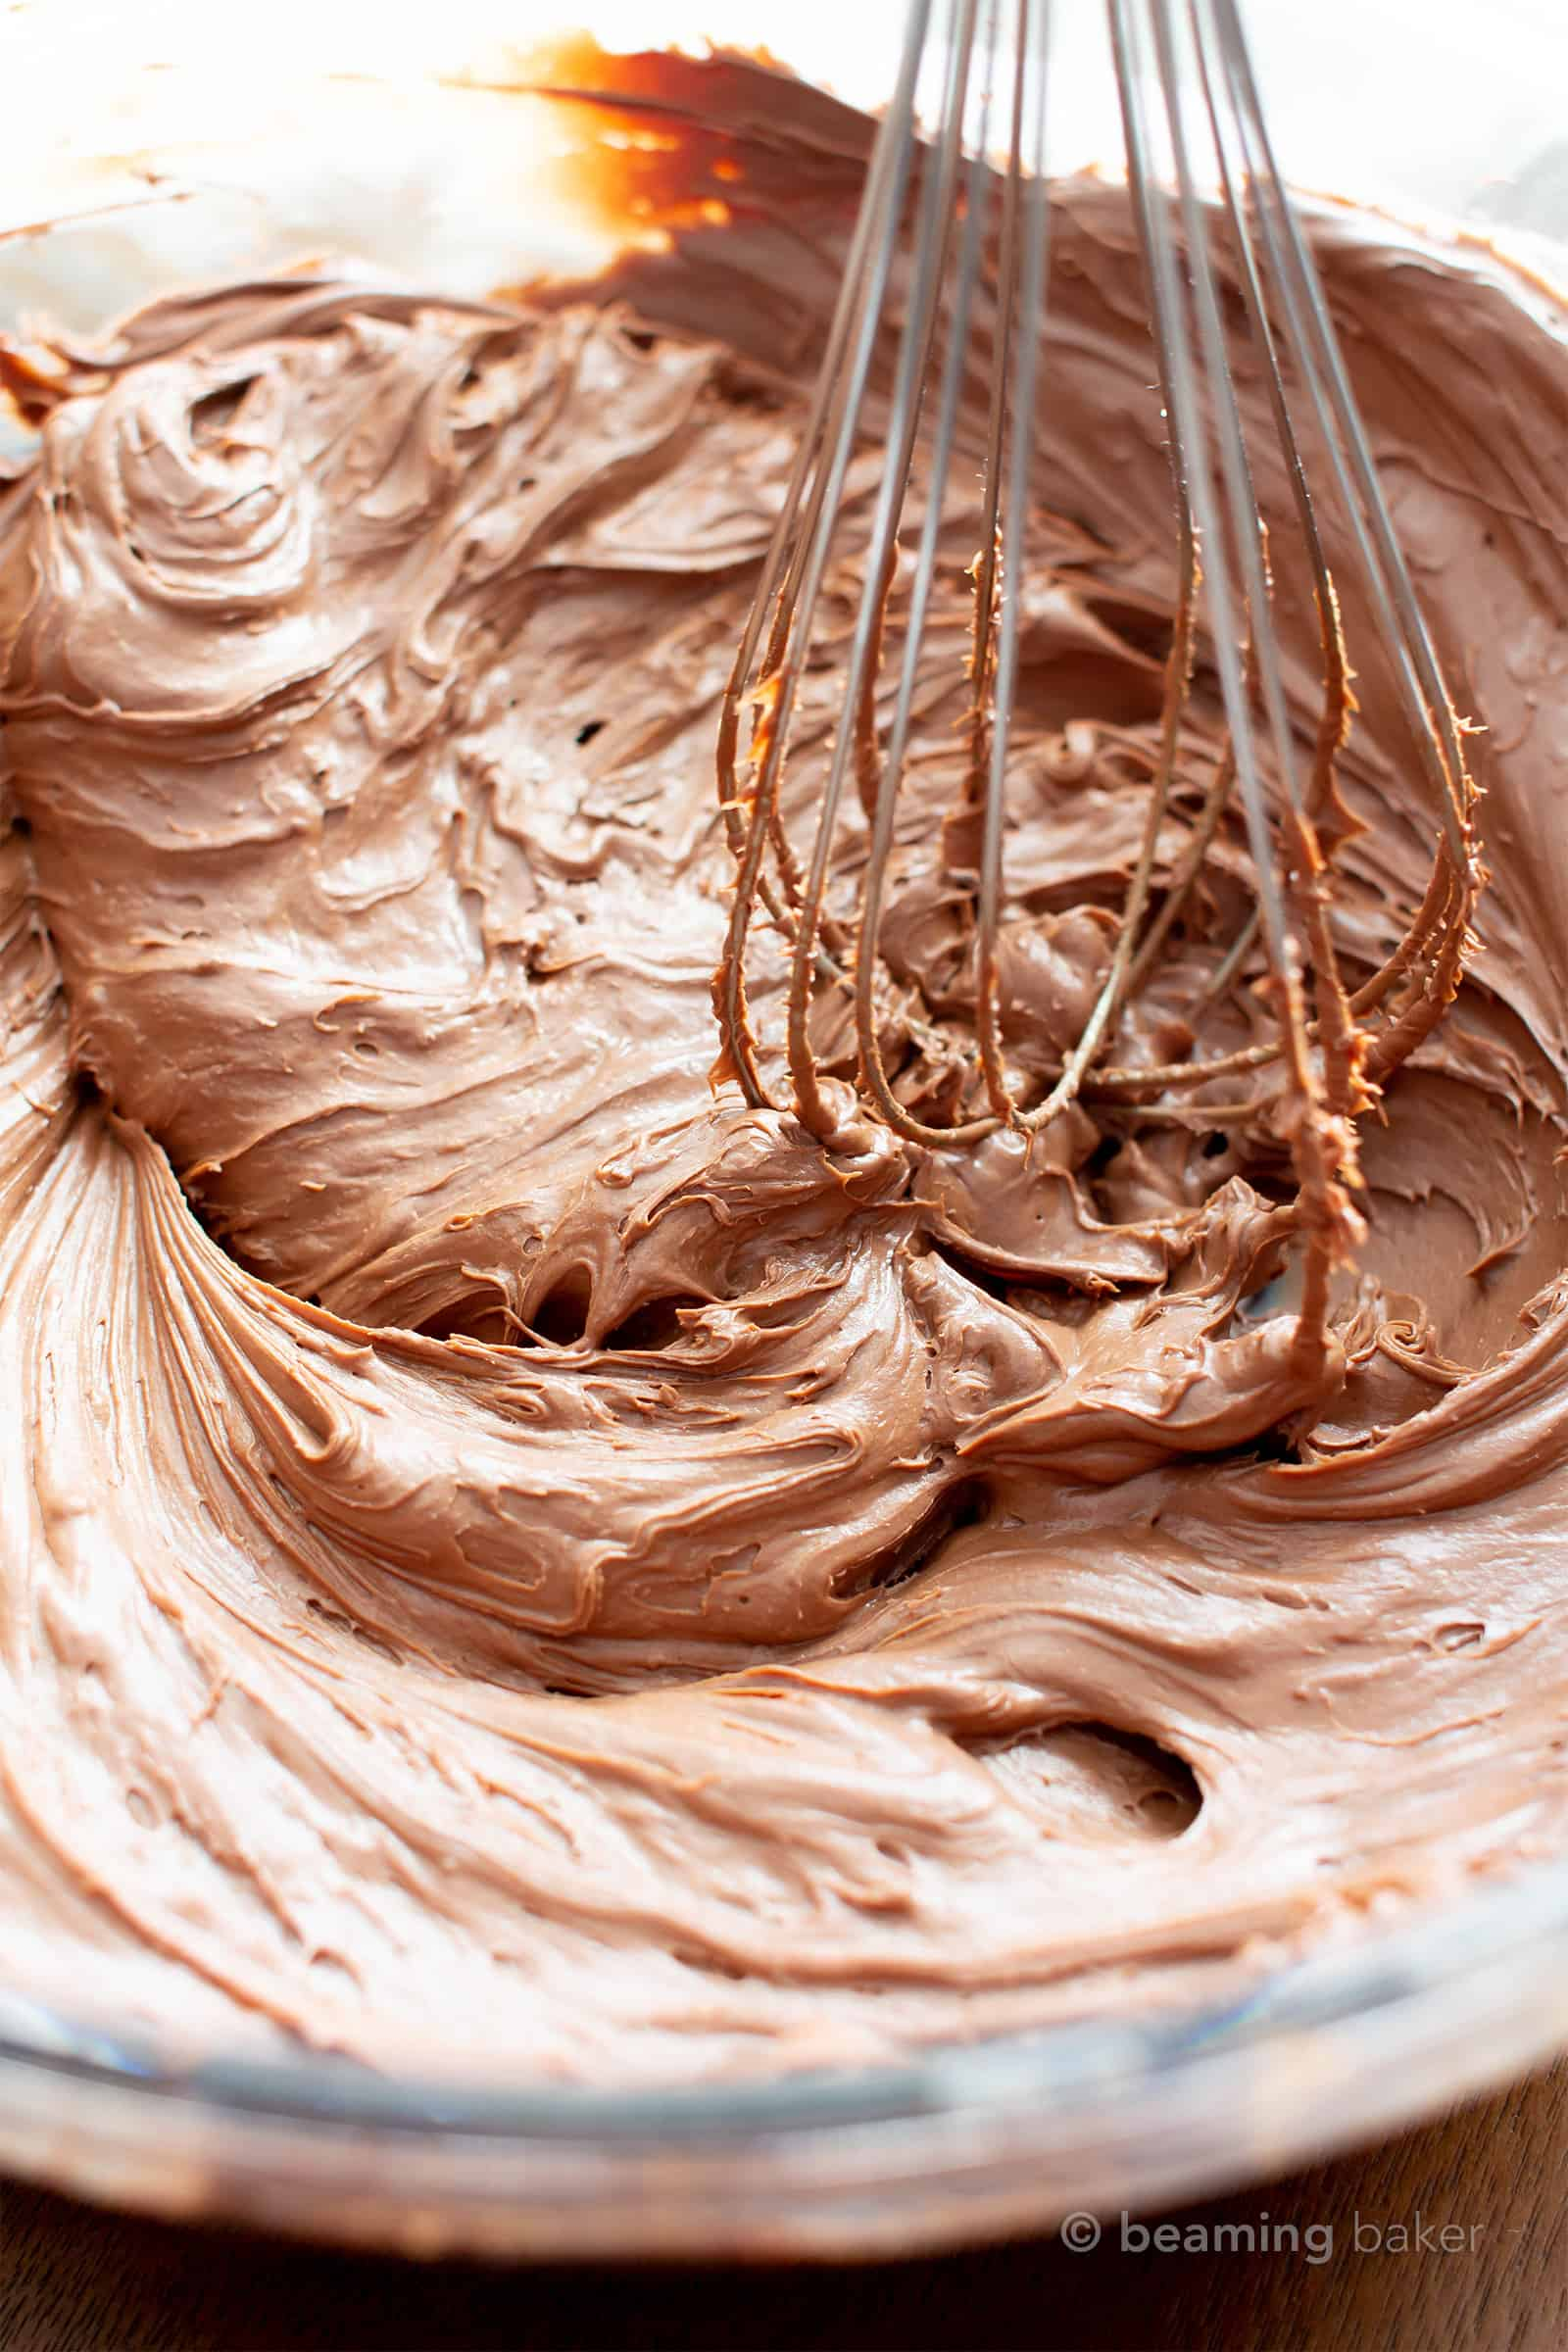 Vegan Chocolate Frosting Recipe: a smooth, silky & creamy dairy free frosting recipe—healthy, refined sugar-free! This paleo chocolate frosting is so easy, with 2 ingredients: coconut cream and chocolate, perfect for frosting chocolate cake & cupcakes! #Vegan #Paleo #GlutenFree #DairyFree #Frosting | Recipe at BeamingBaker.com